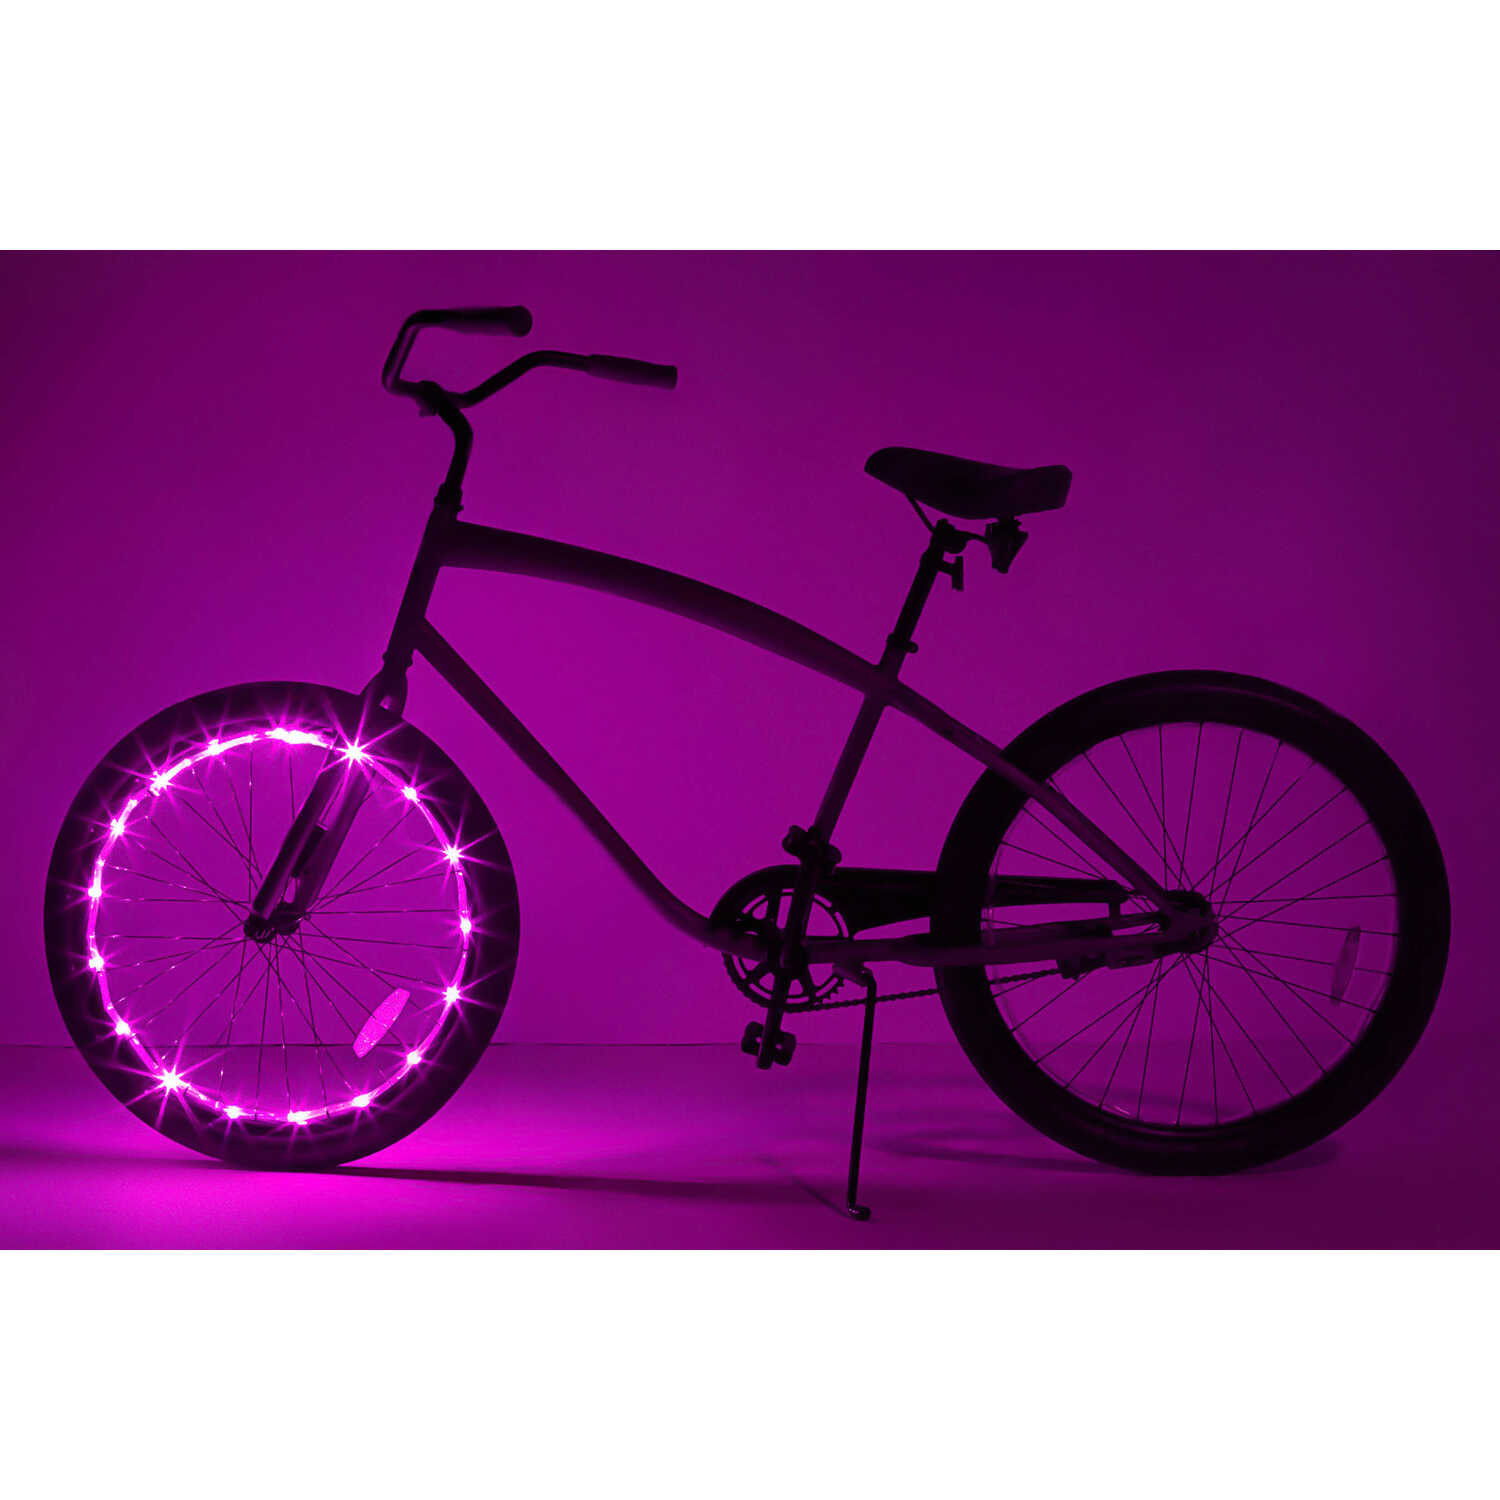 Brightz  WheelBrightz  bike lights  LED Bicycle Light Kit  ABS Plastics/Polyurethane/Electronics  1